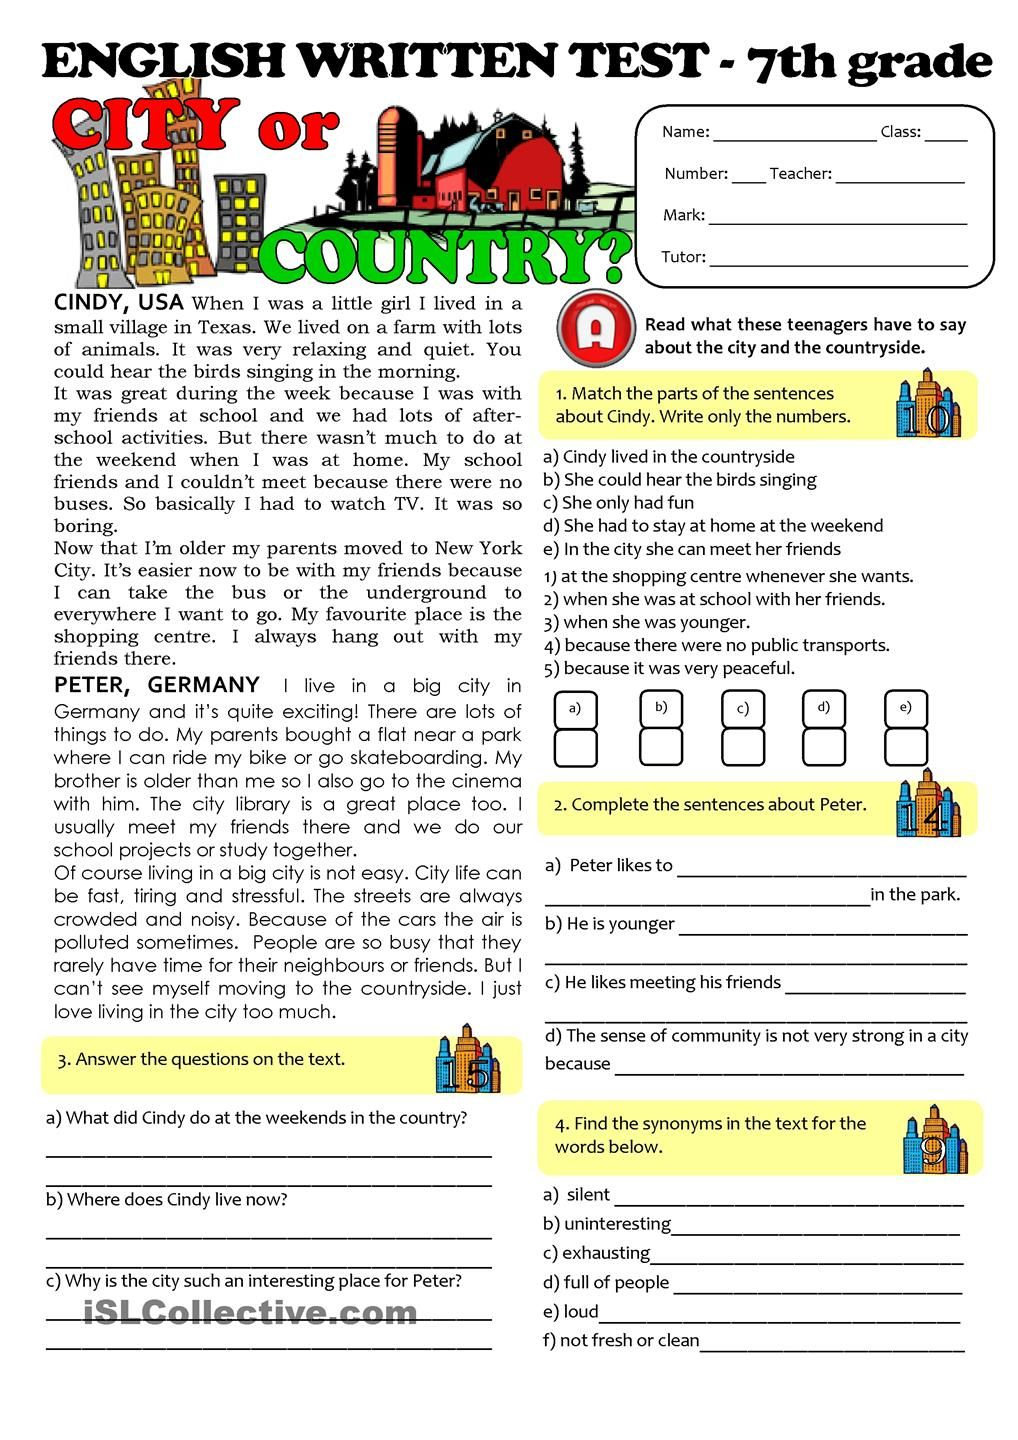 CITY vs COUNTRYLIFE - TEST (7th grade) | Texts | Pinterest | Schule ...